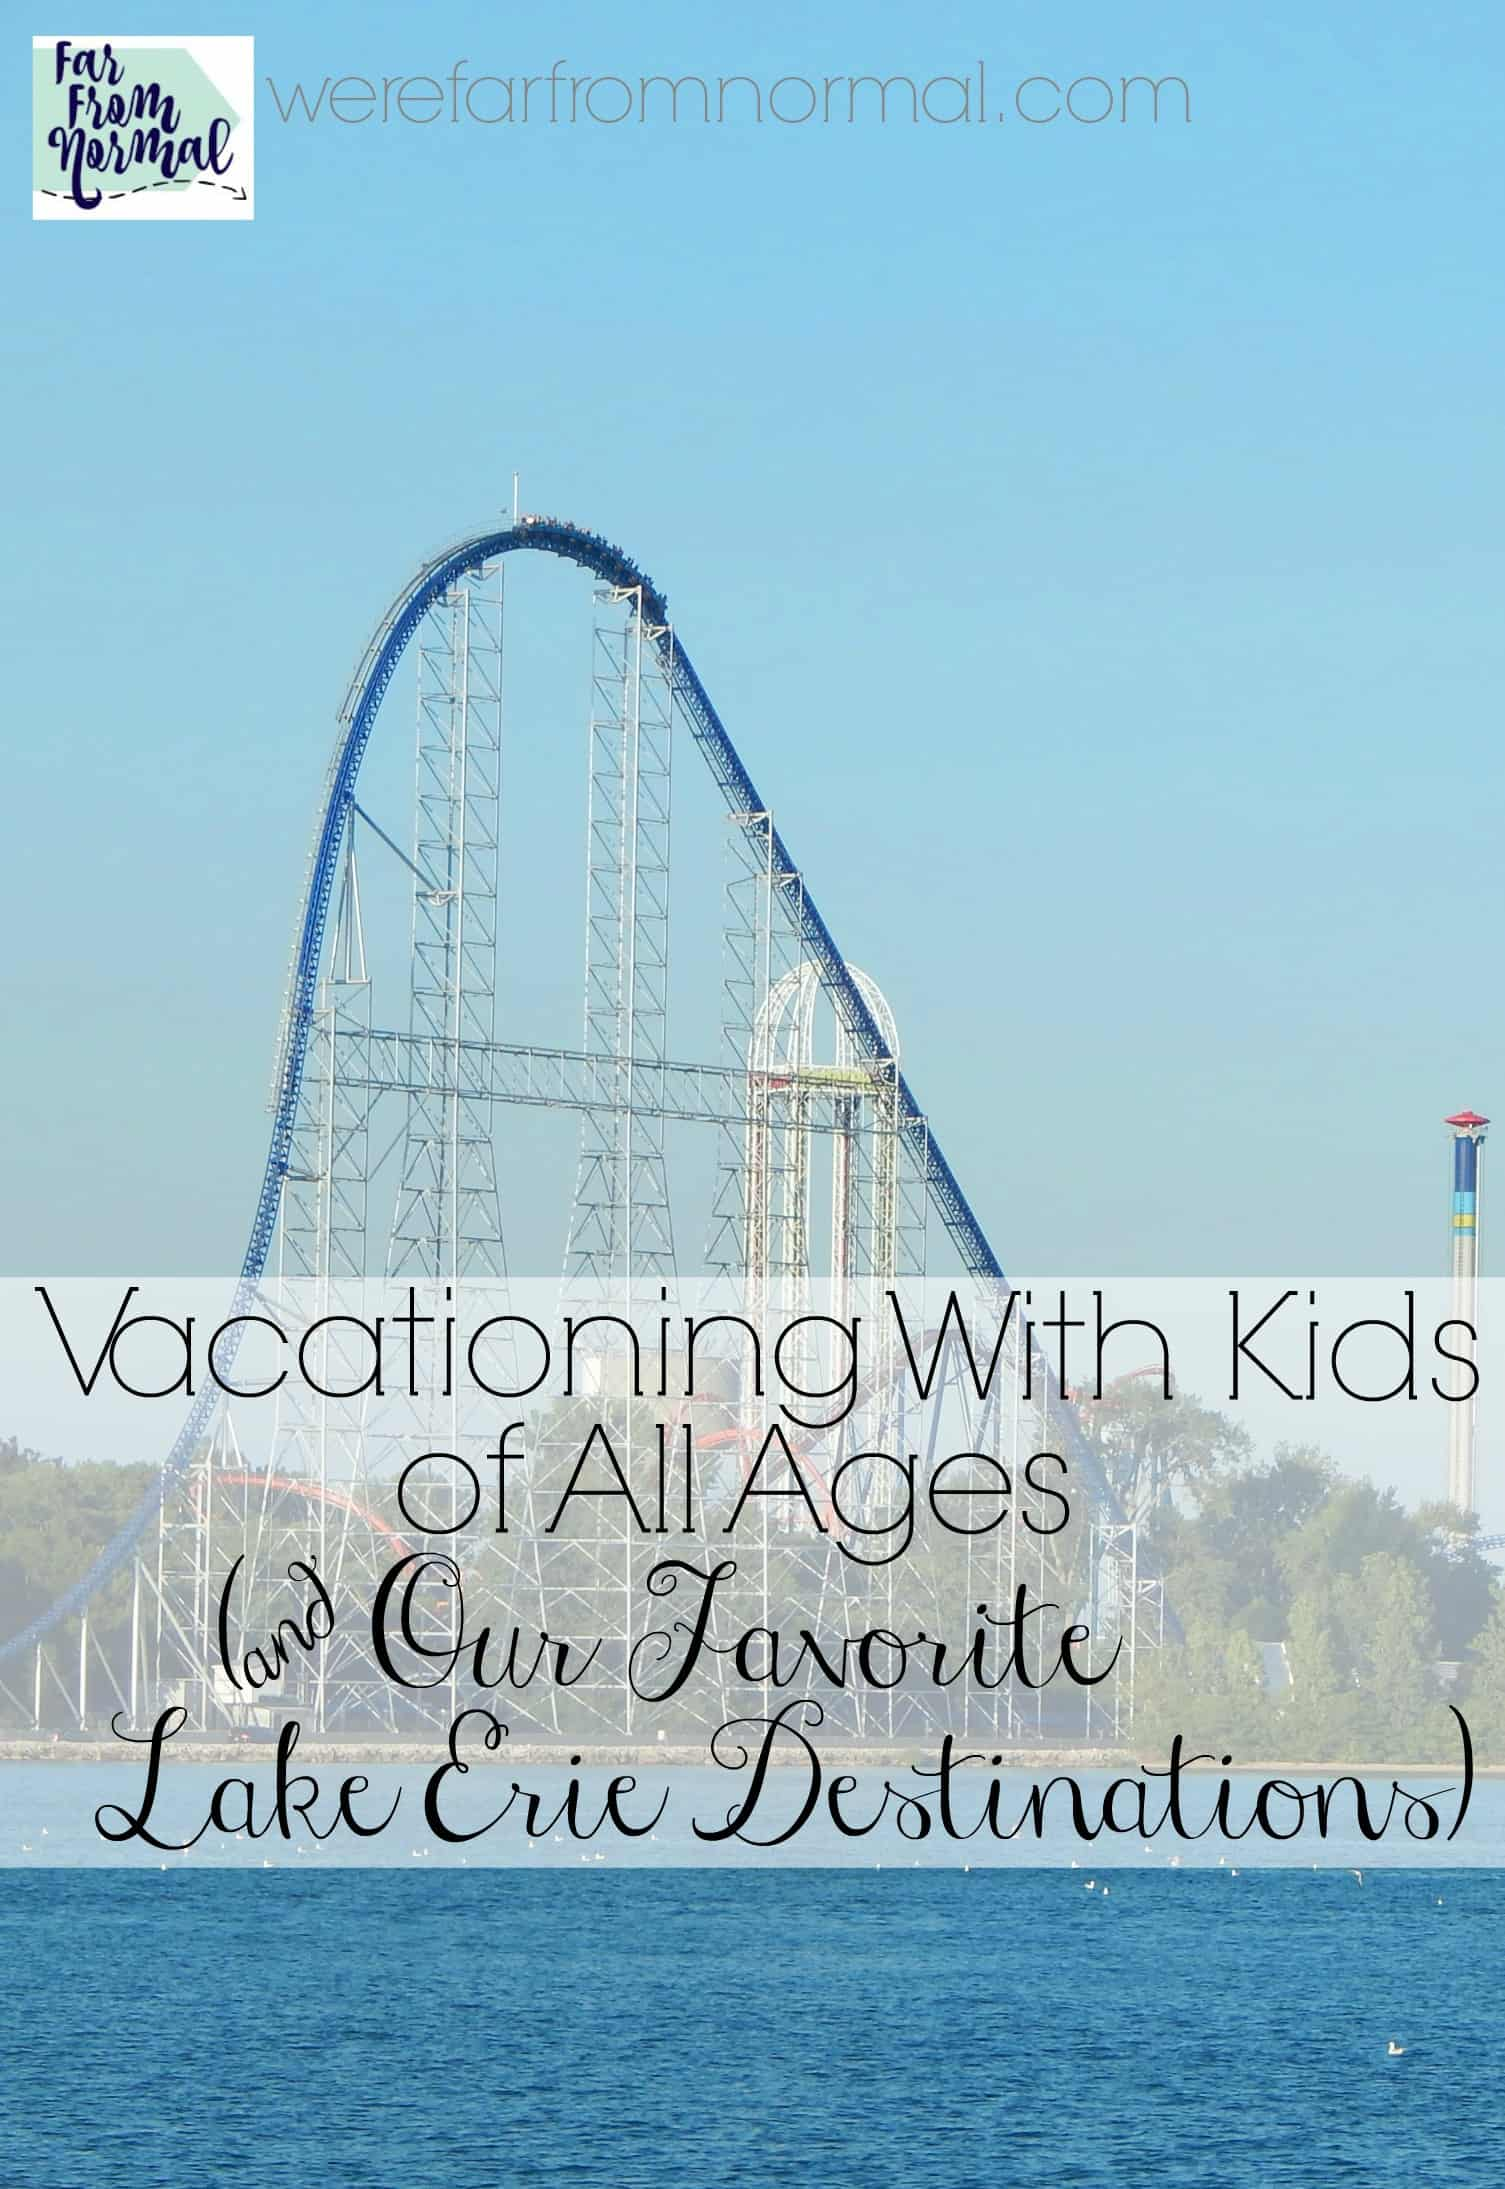 Vacationing With Kids of All Ages ( & Our Favorite Lake Erie Destinations)